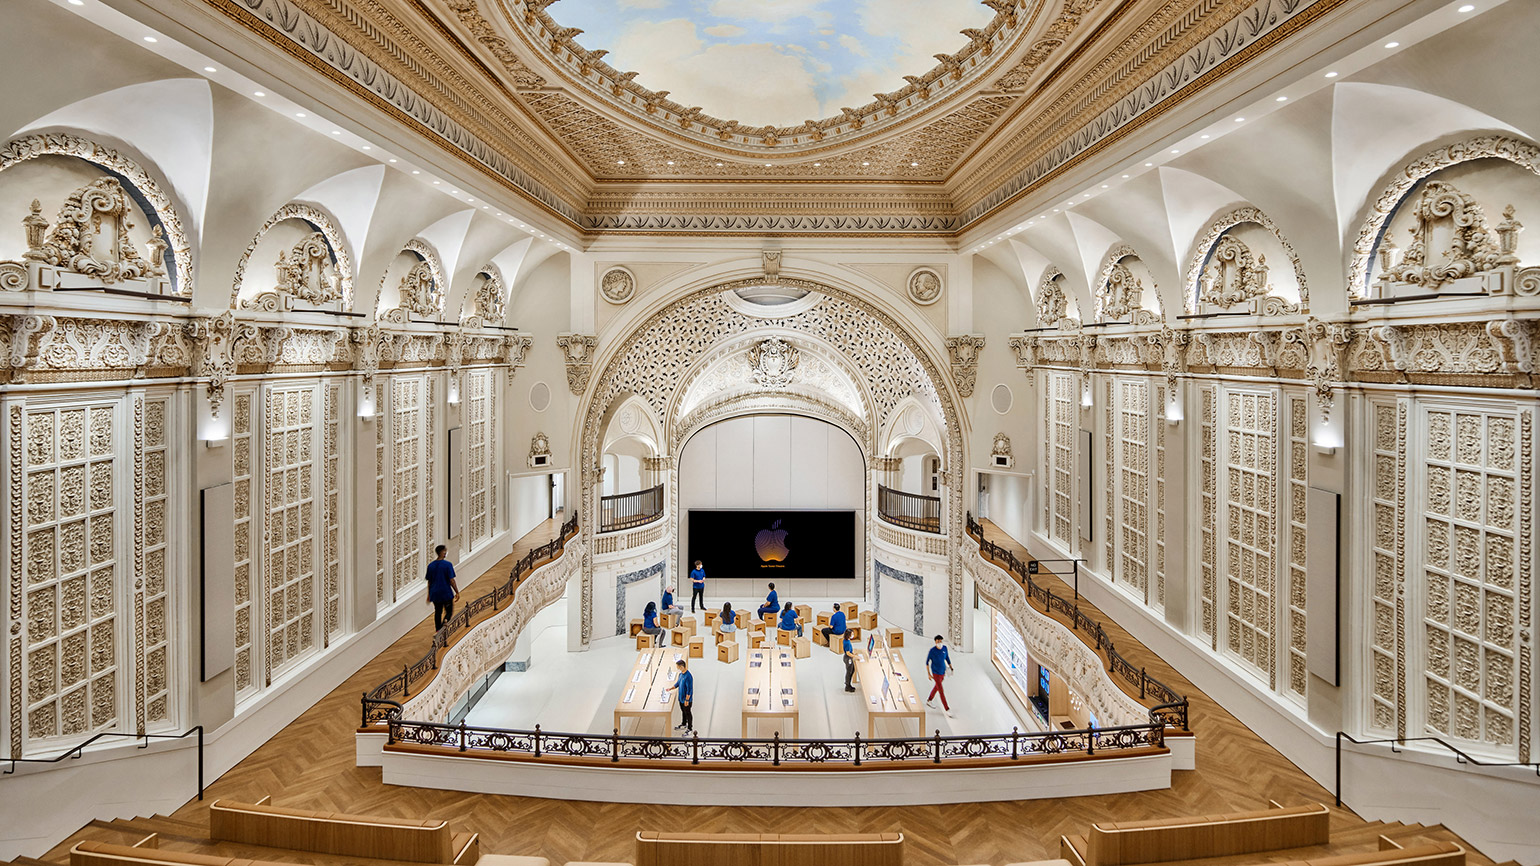 New Apple Store by Foster + Partners Opens in Los Angeles' Historic Tower Theater